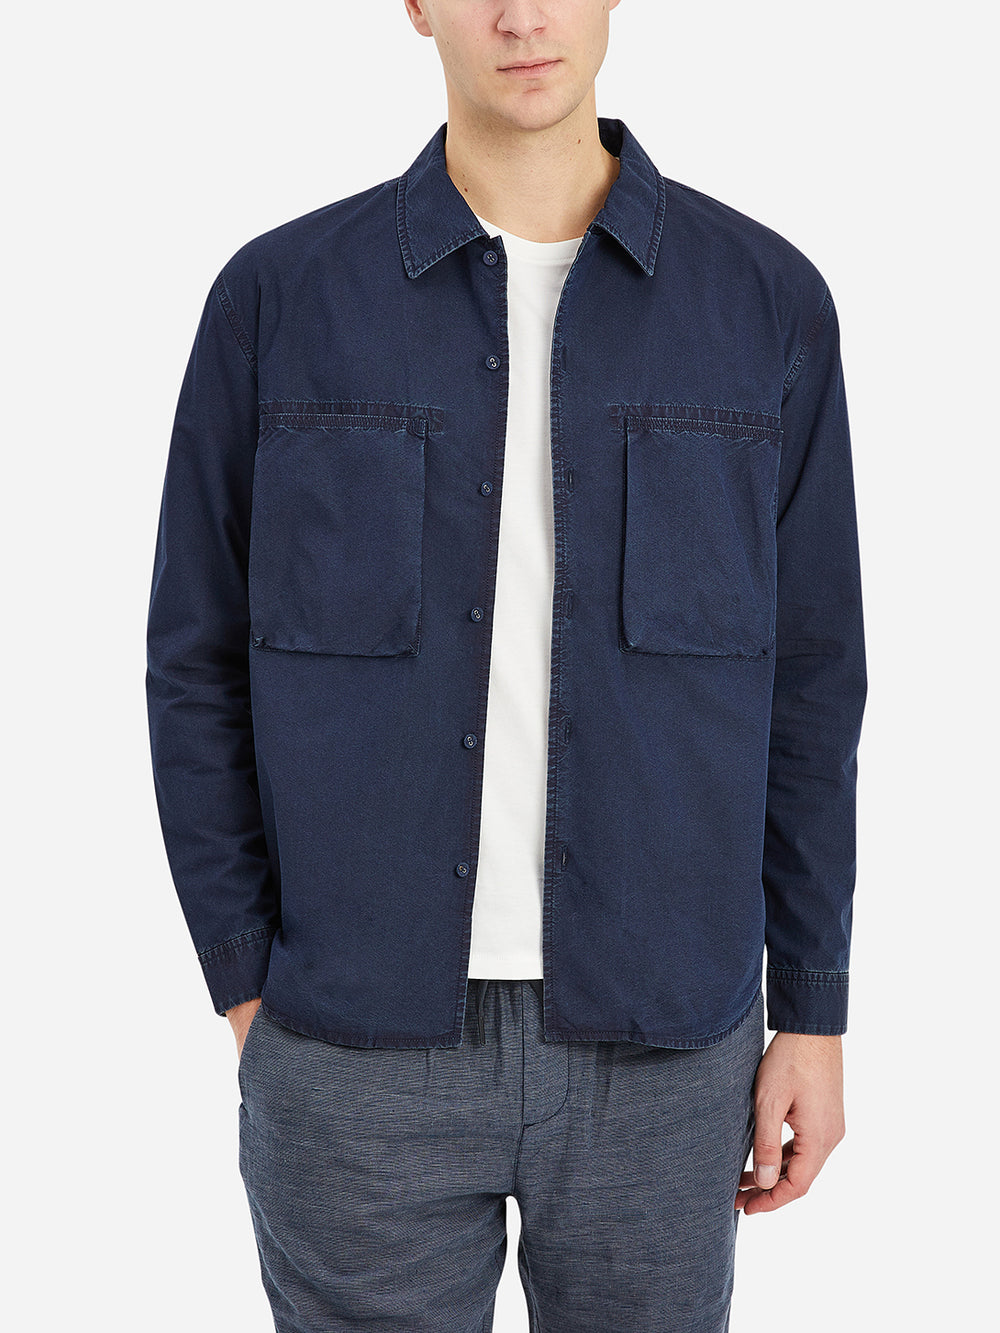 Indigo Corsa Indigo Shirt Jacket Men's cotton jackets ONS Clothing